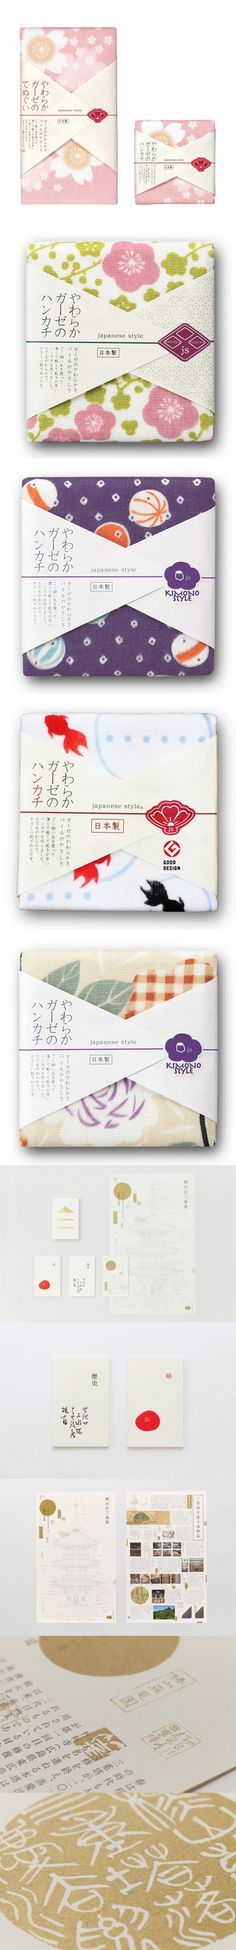 Handkerchief package design